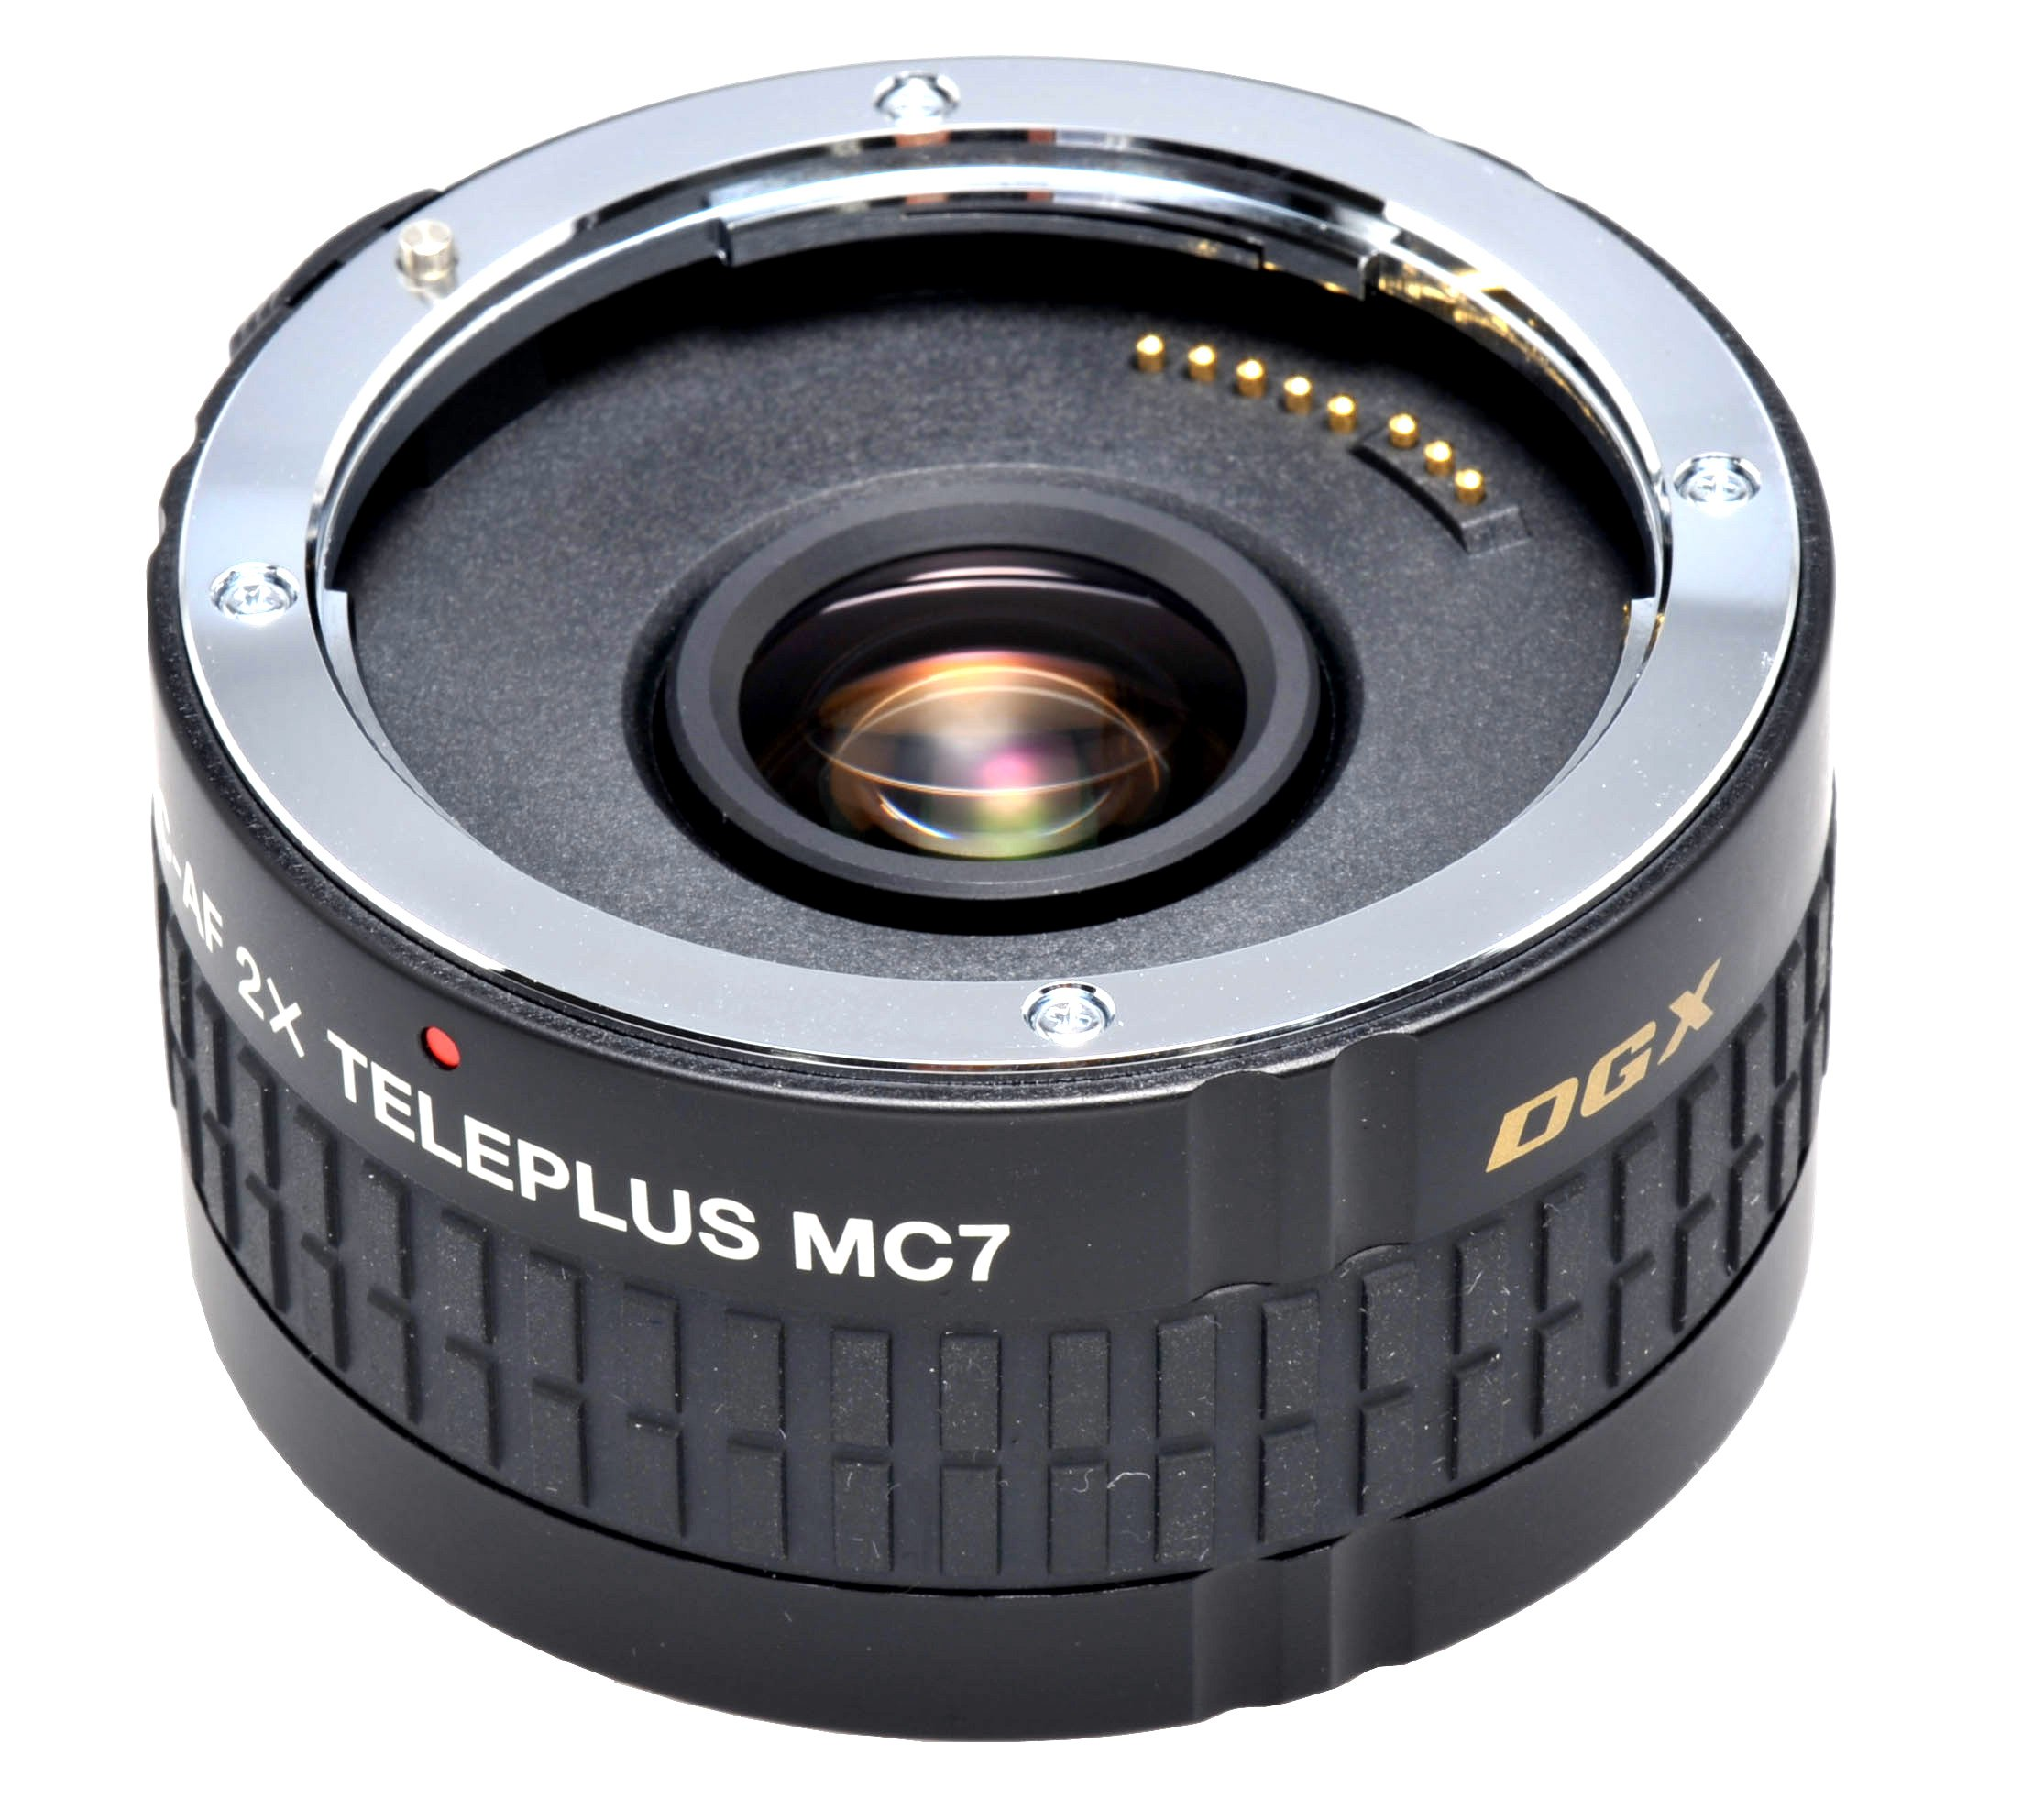 Kenko 2X Teleplus - 7 Element DG for Nikon Auto Focus Digital SLRs by THK Photo Products Inc.